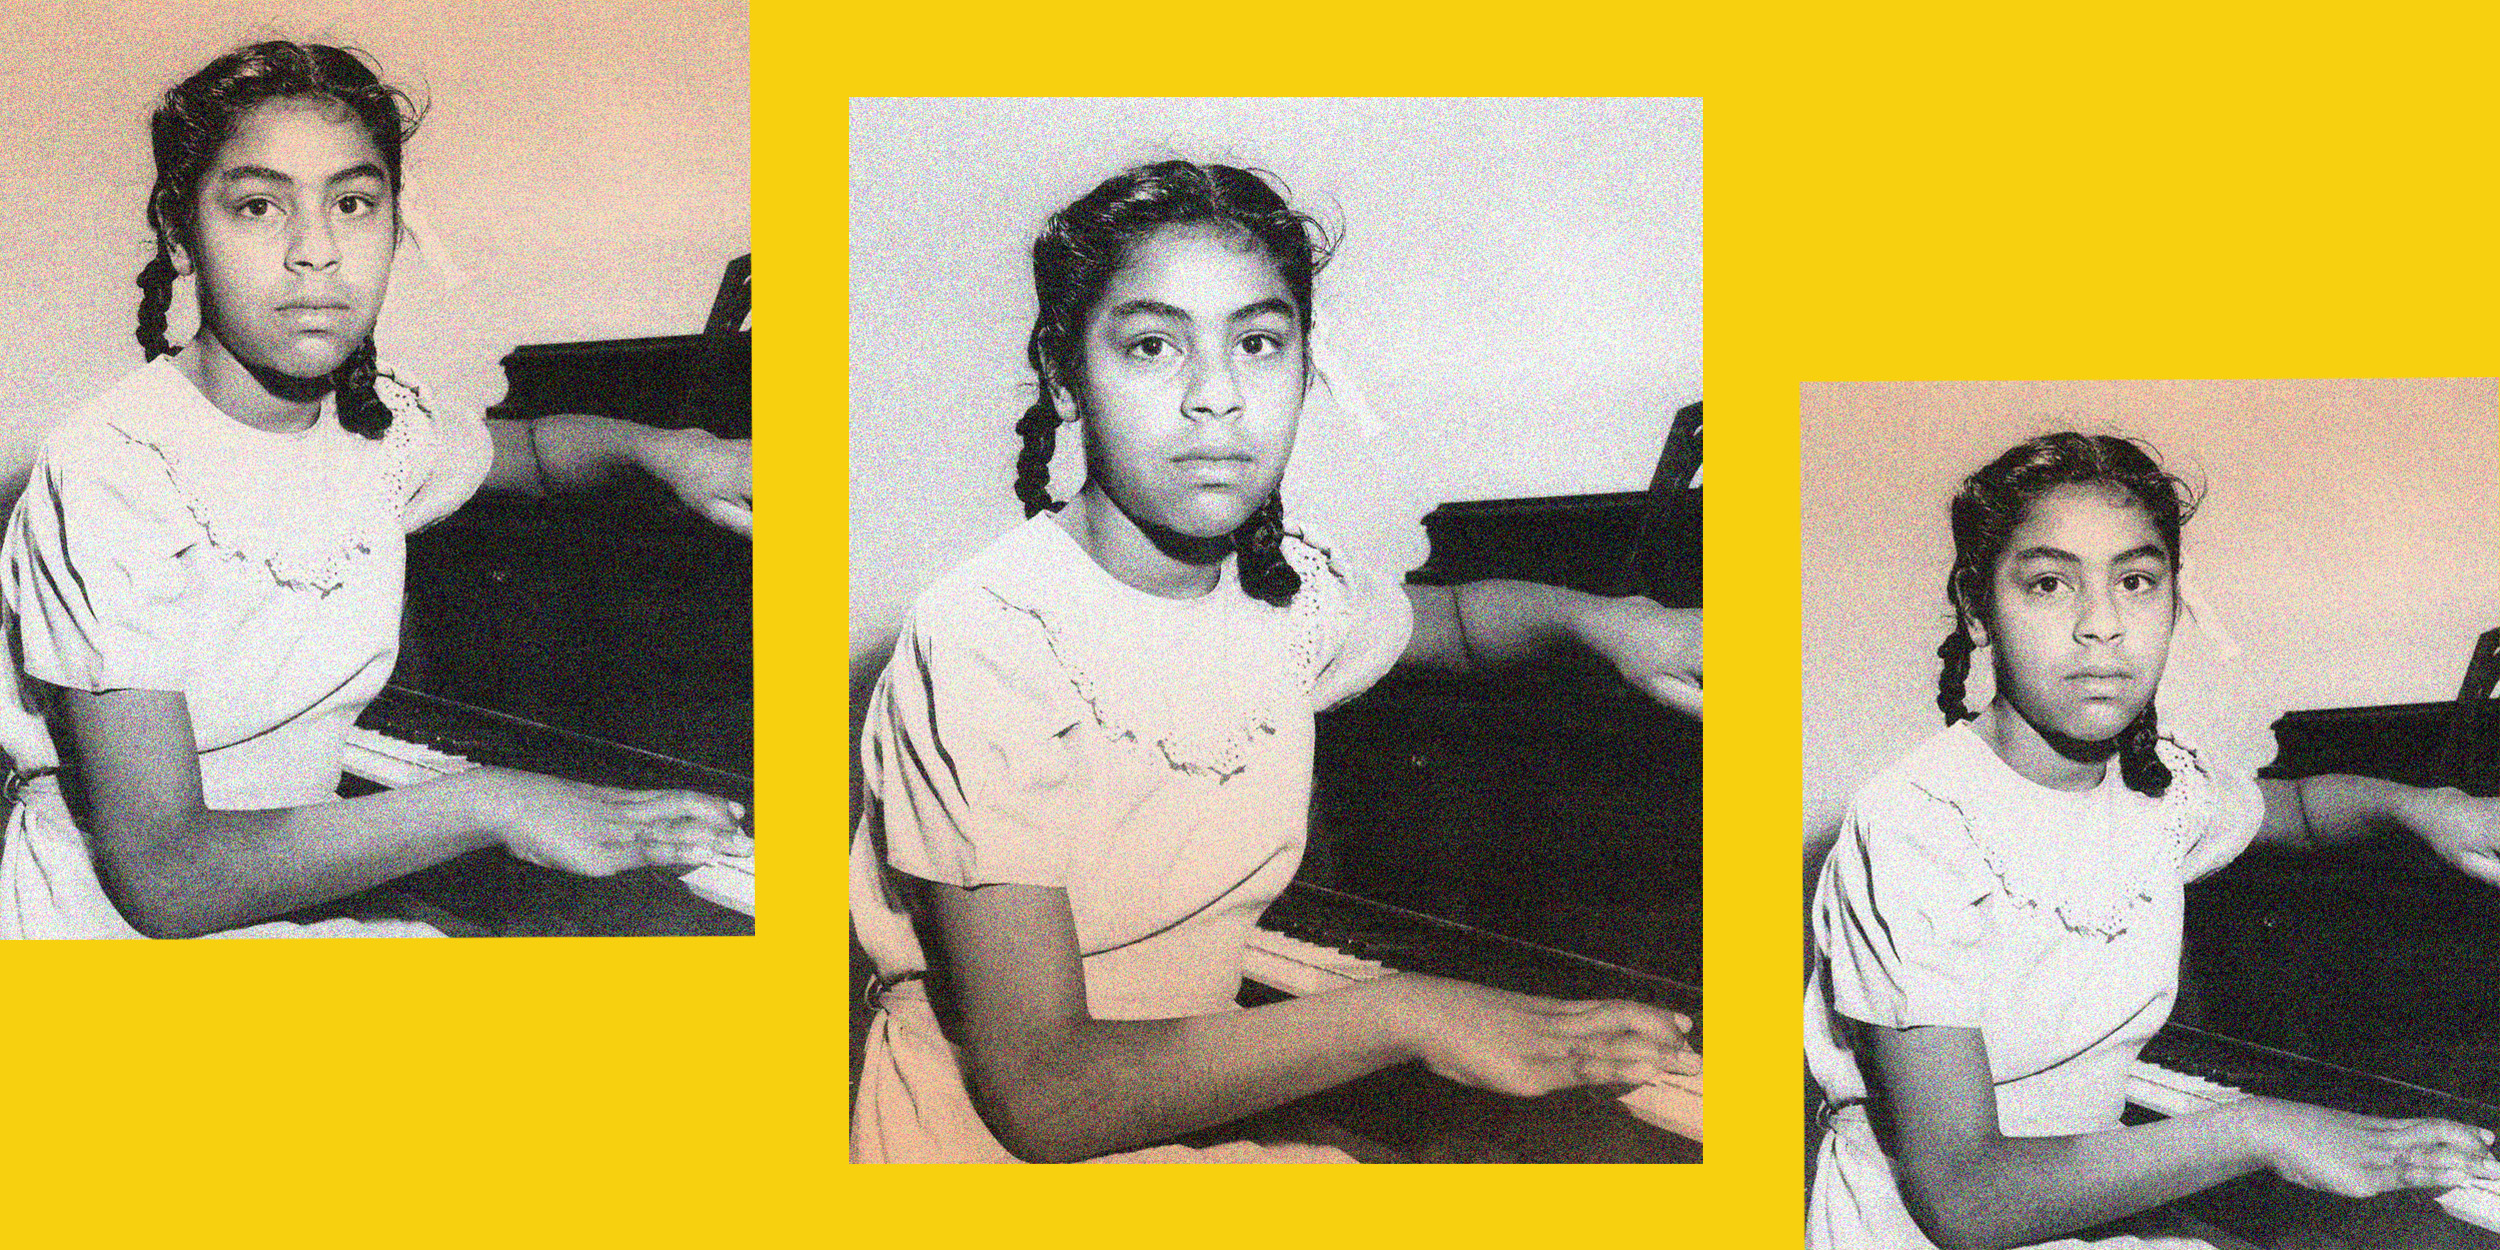 A Latino family paved the way for school desegregation. It's still 'unknown' history.